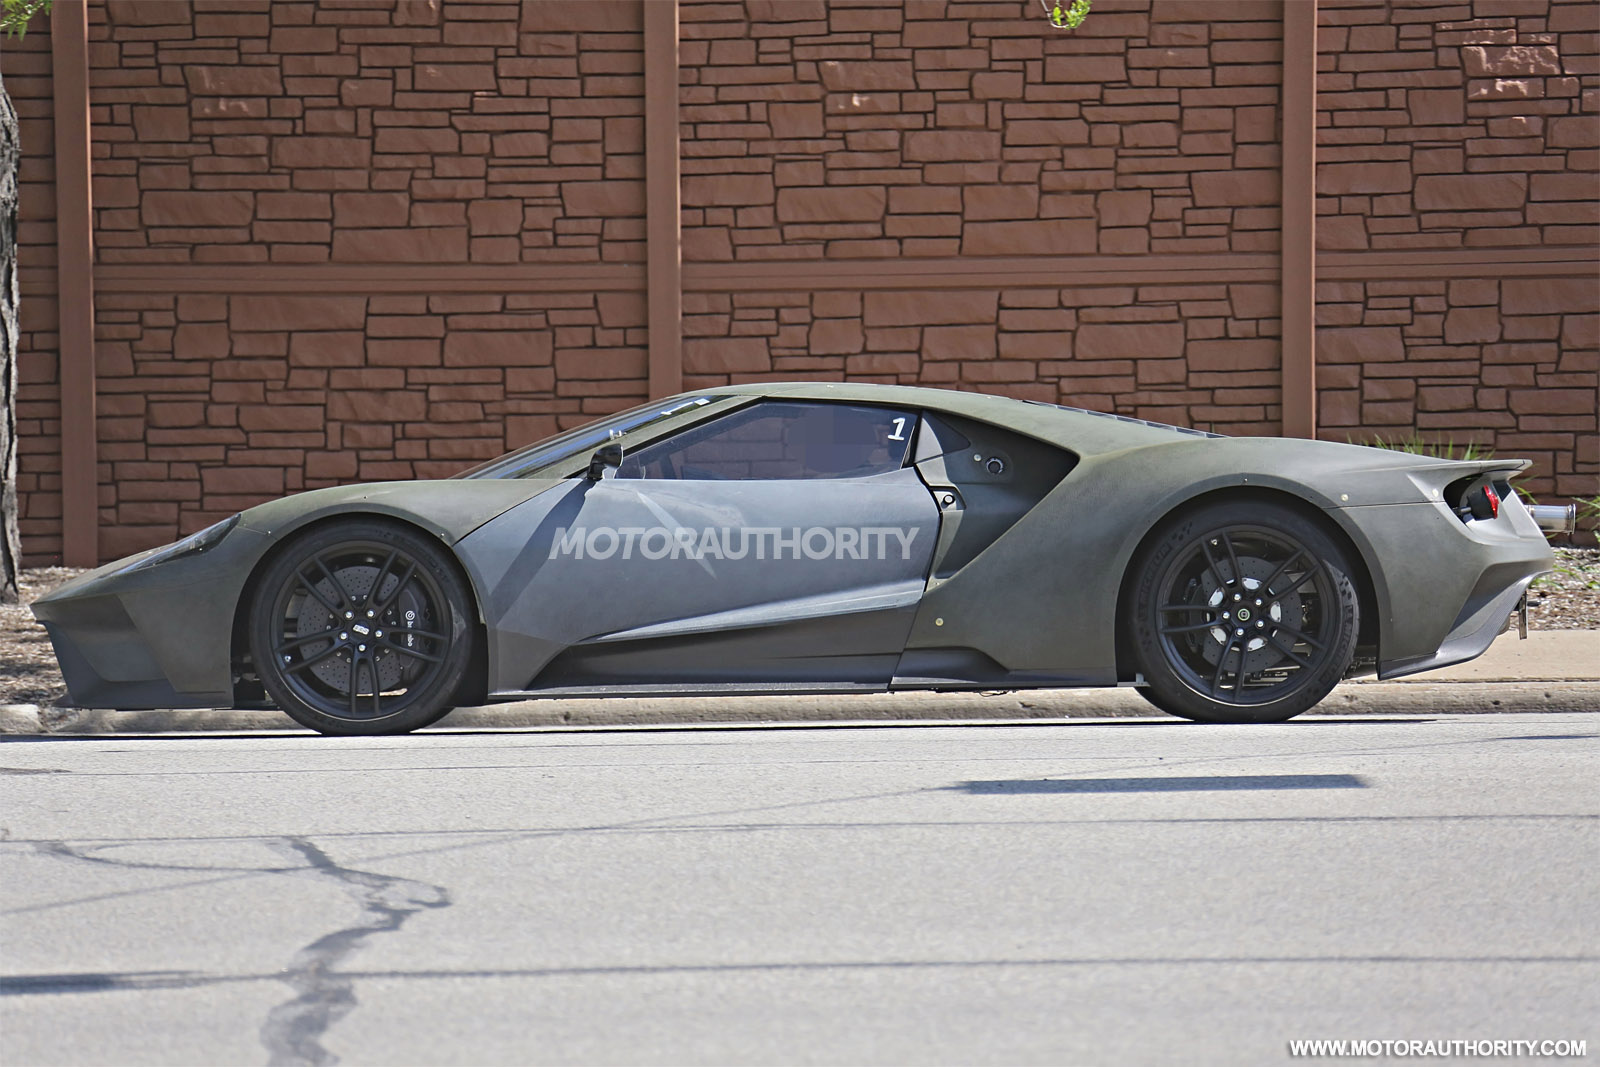 Ford ford gt car : Hyperloop Test Track, Ford GT Spy Shots, F&F Supra Sold: Today's ...